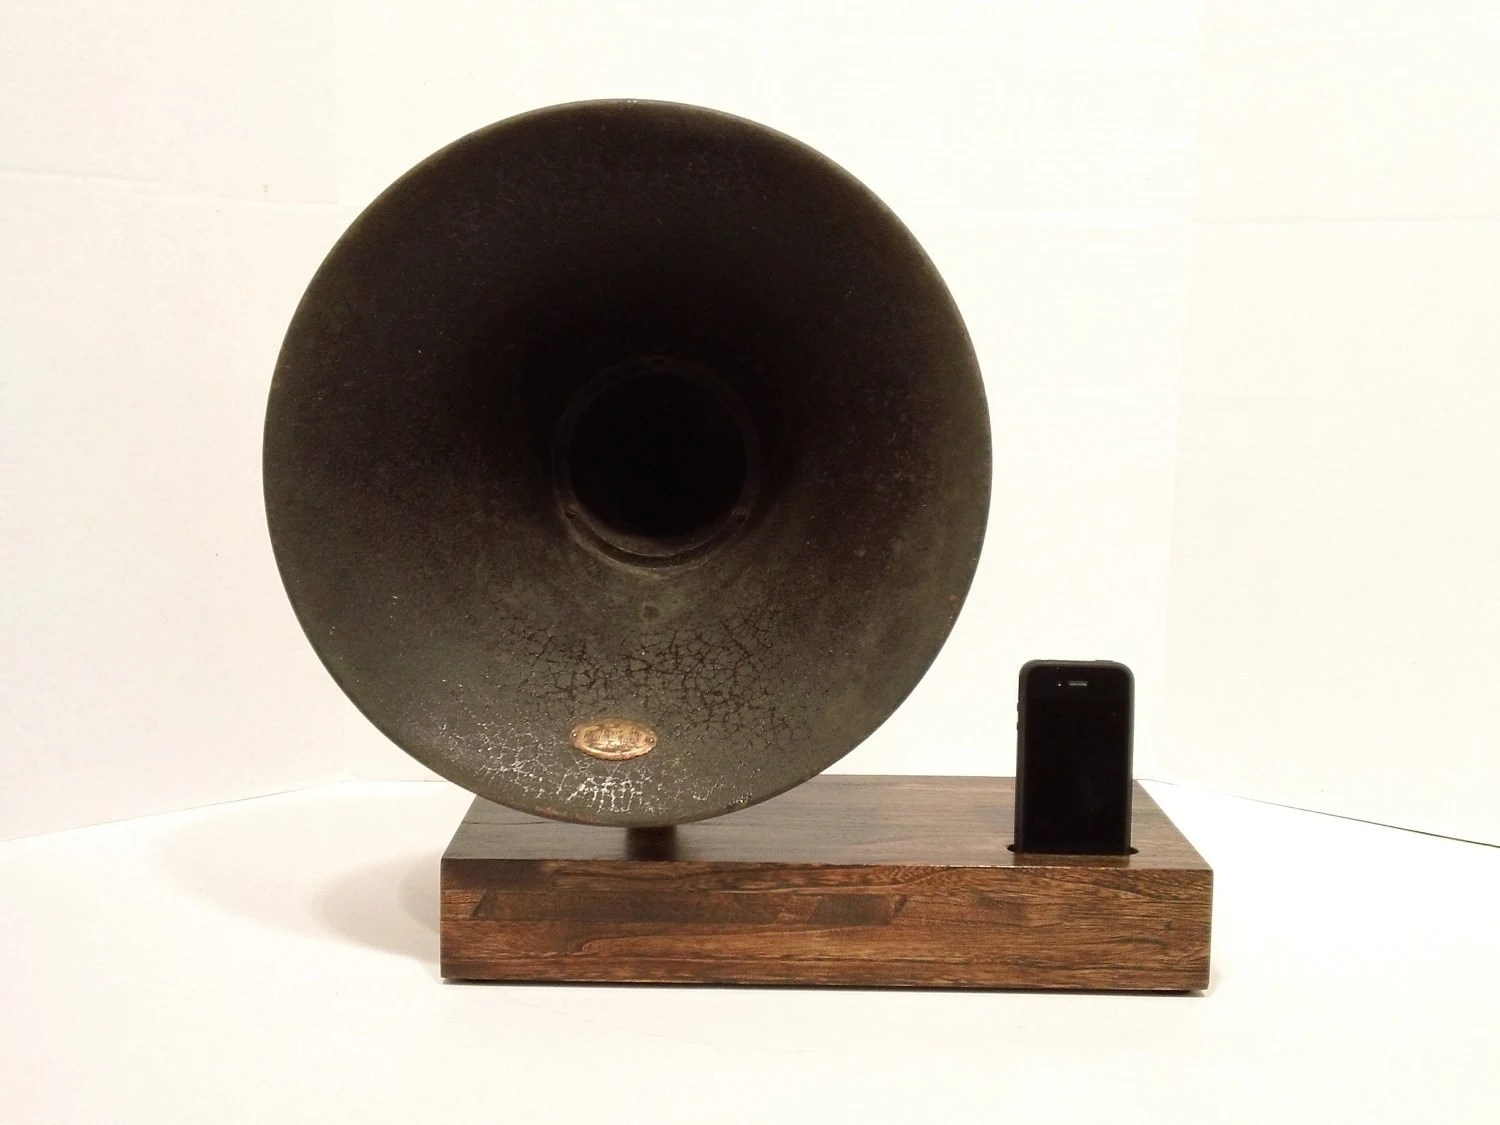 14 inch Atwater Kent  iPhone Speaker Dock Utilizing a Vintage Antique Gramophone Phonograph Horn -MADE to ORDER-